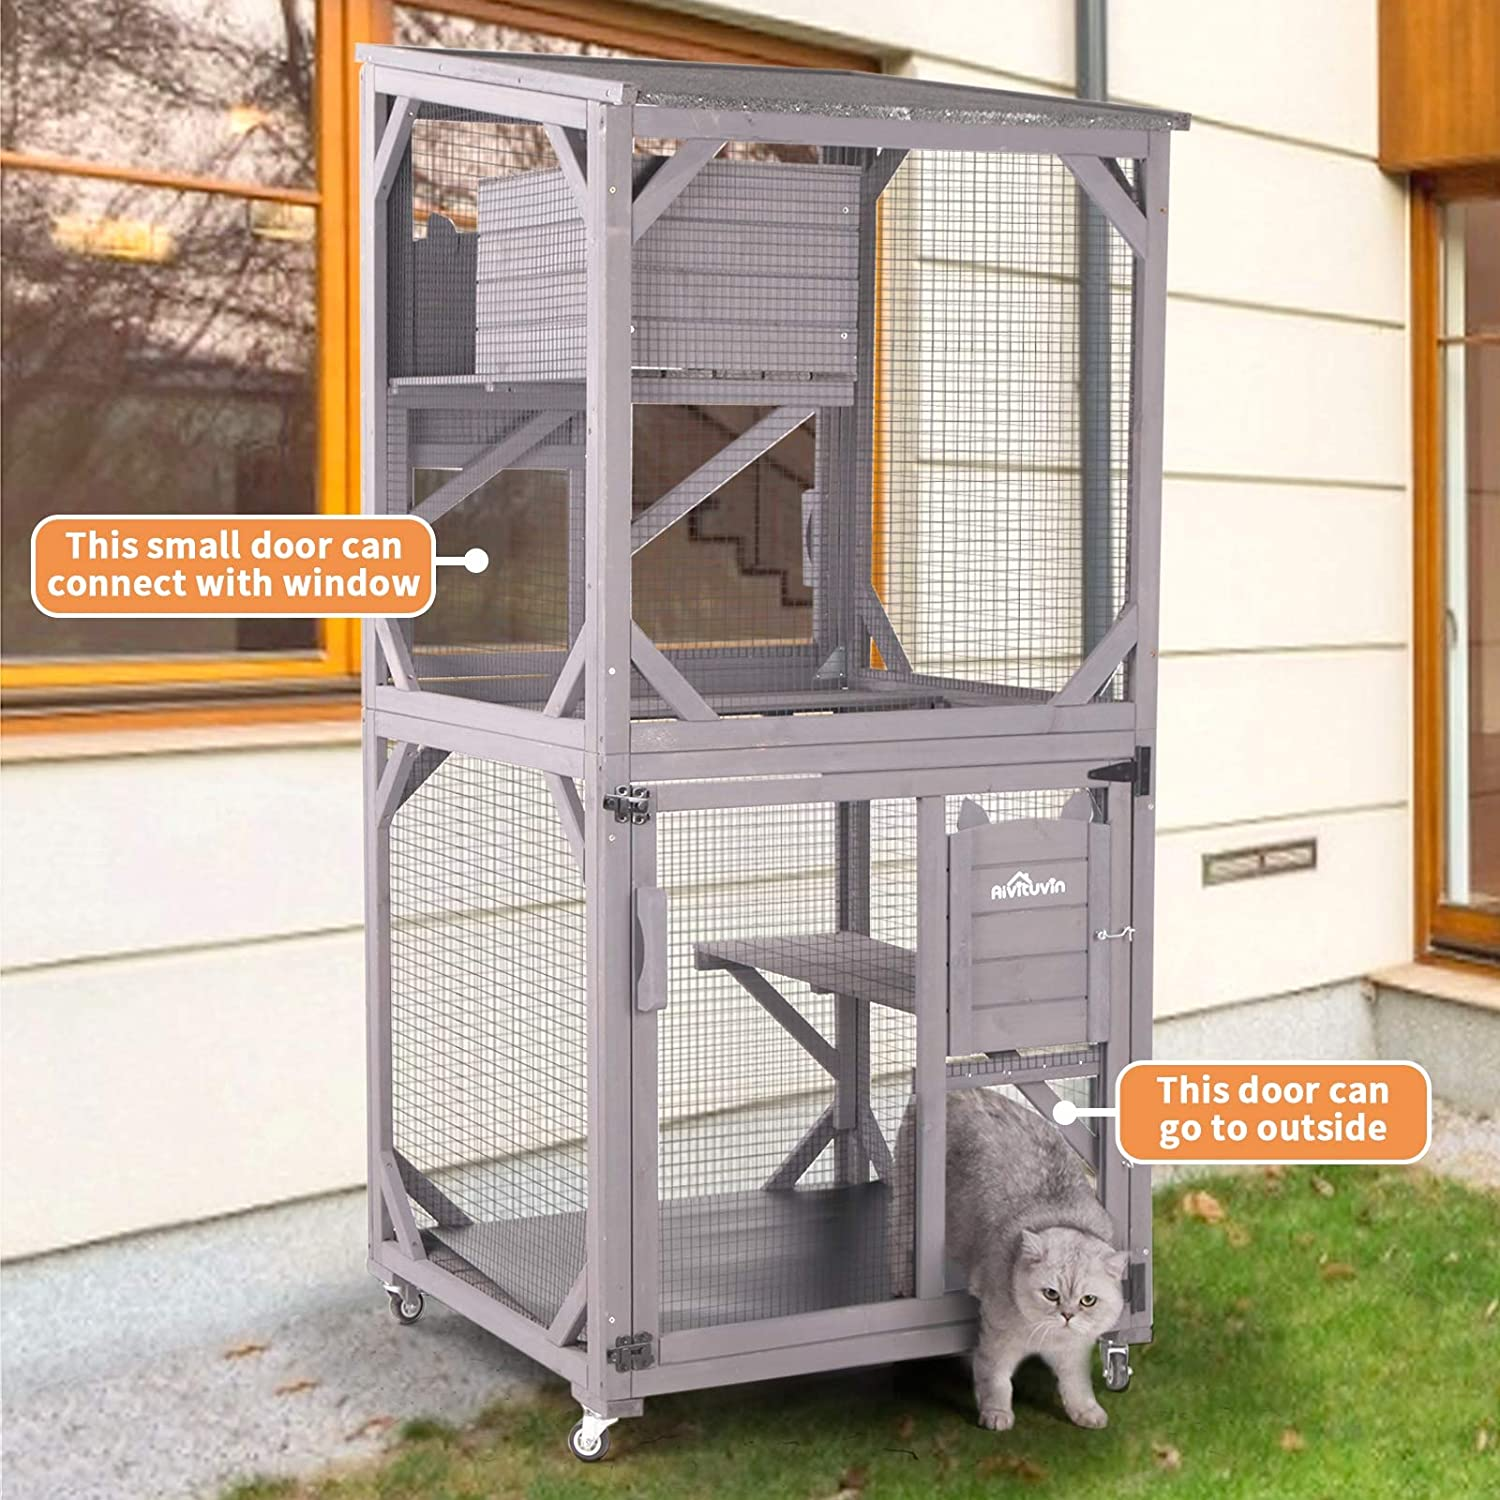 Aivituvin Wooden Cat House Outdoor and Indoor Run Large Cat Enclosure on Wheels 70.9 Upgraded Version Catio Cage with Reinforcement Wooden Strip,Waterproof Roof